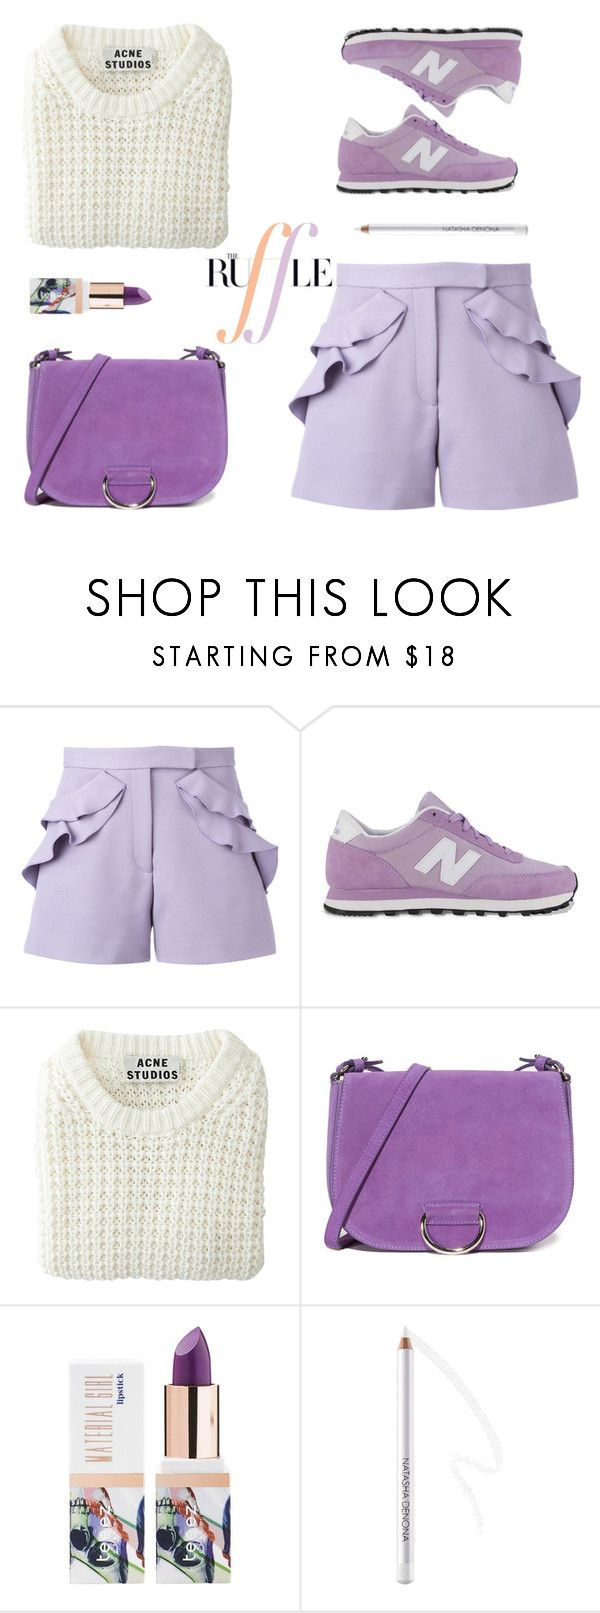 """""""Spring Sweater"""" by stavrolga ❤ liked on Polyvore featuring Elie Saab, New Balance, Acne Studios, Little Liffner, Teeez, polyvoreeditorial, purplelipstick, springsweater and ruffledshorts"""